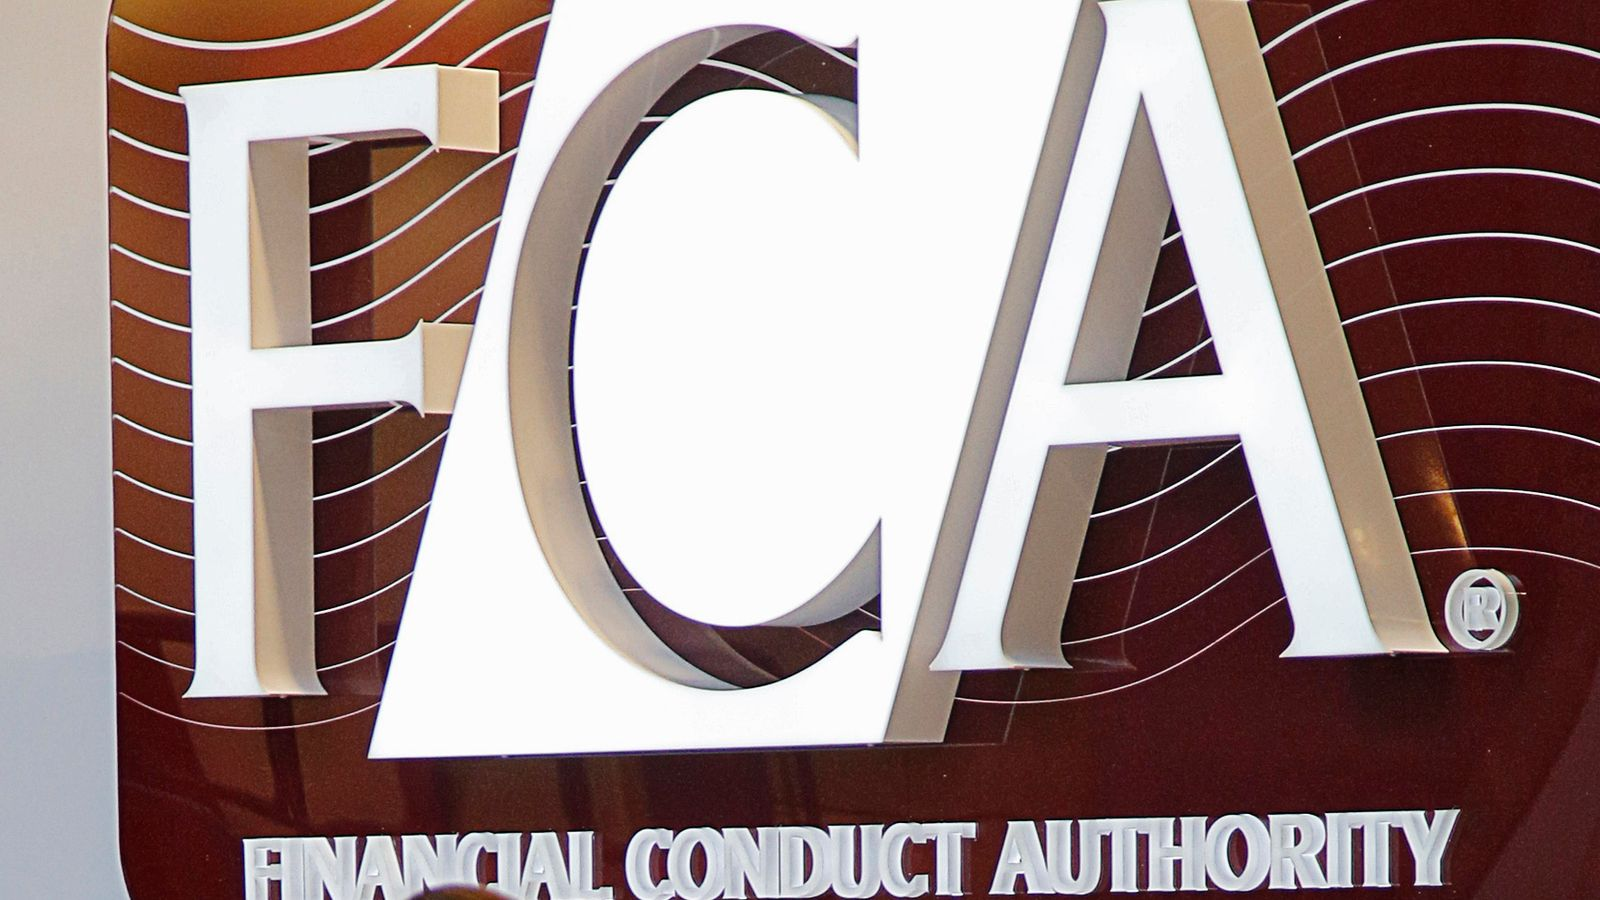 Ex-Redcentric bosses face prosecution after FCA probe   Business News